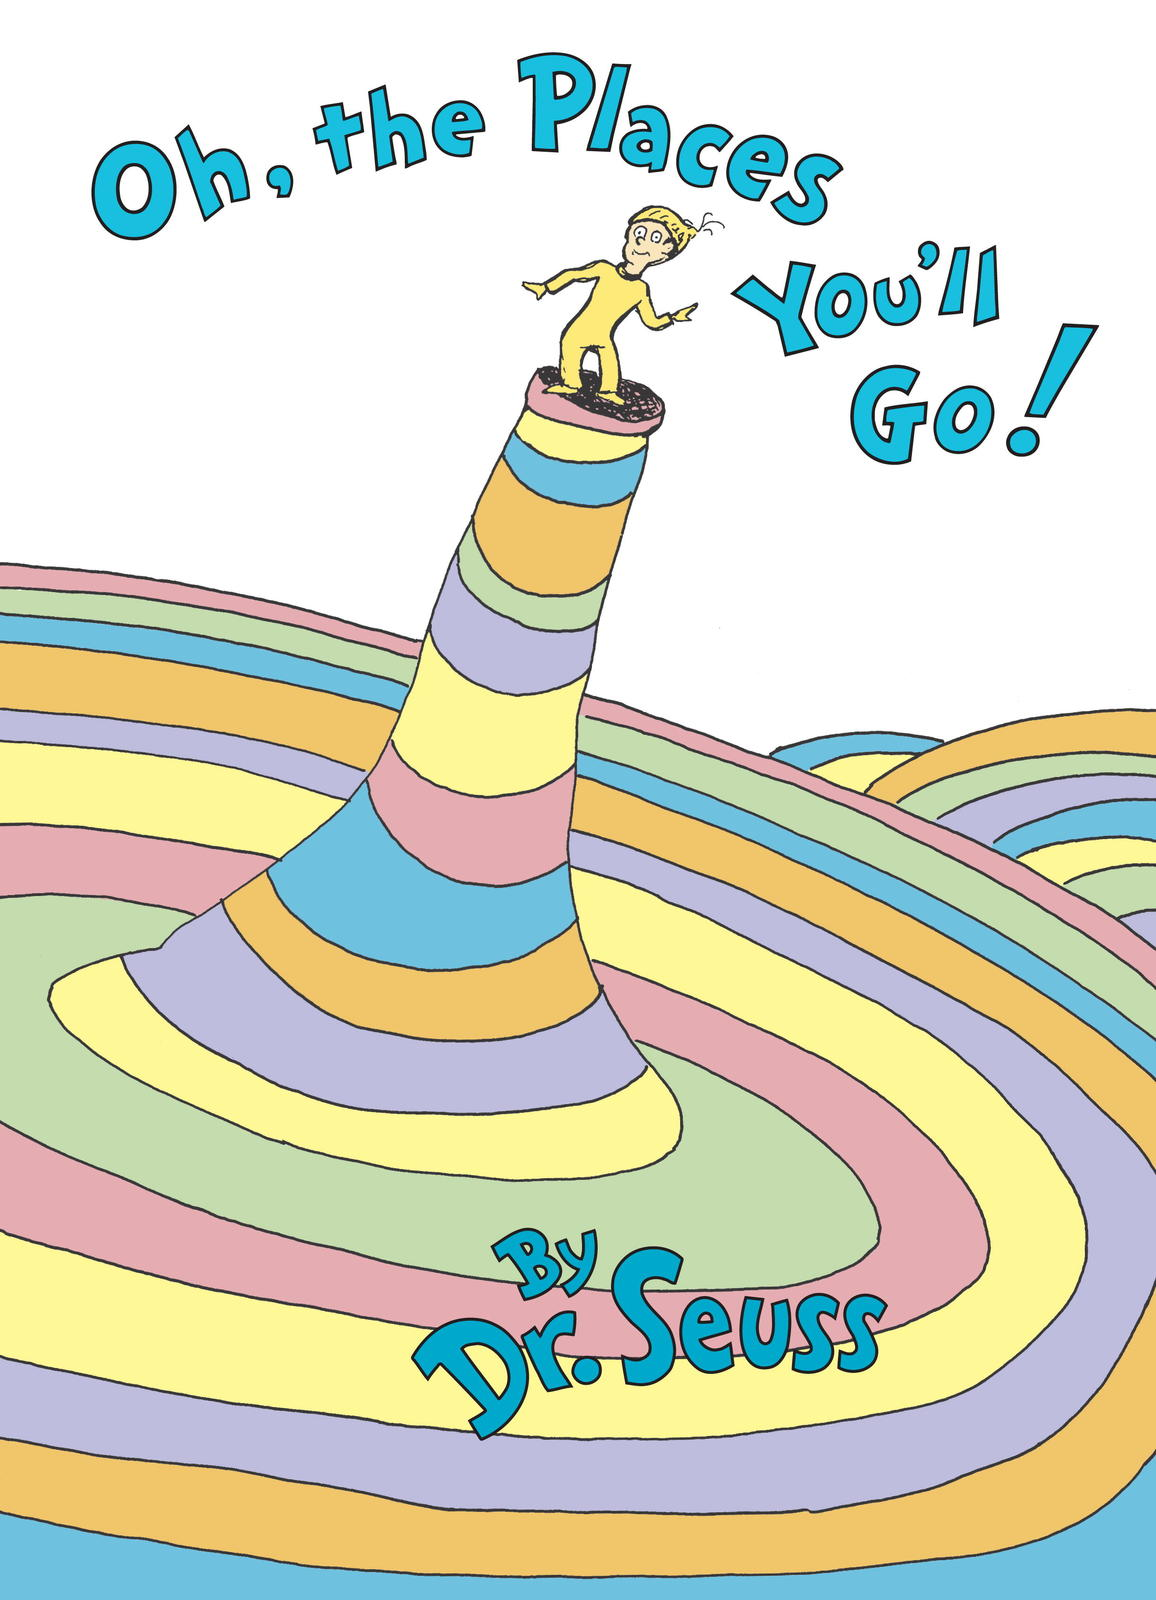 a review of oh the places youll go a childrens book by dr seuss Write a review tags cards dr seuss oh the places youll go graduation preschool childrens book kids kindergarten class of cute all products dr seuss oh the places youll go graduation preschool childrens book kids kindergarten class of cute other info product id: 137638782362173121added on 24/1/17, 3:31 pm.